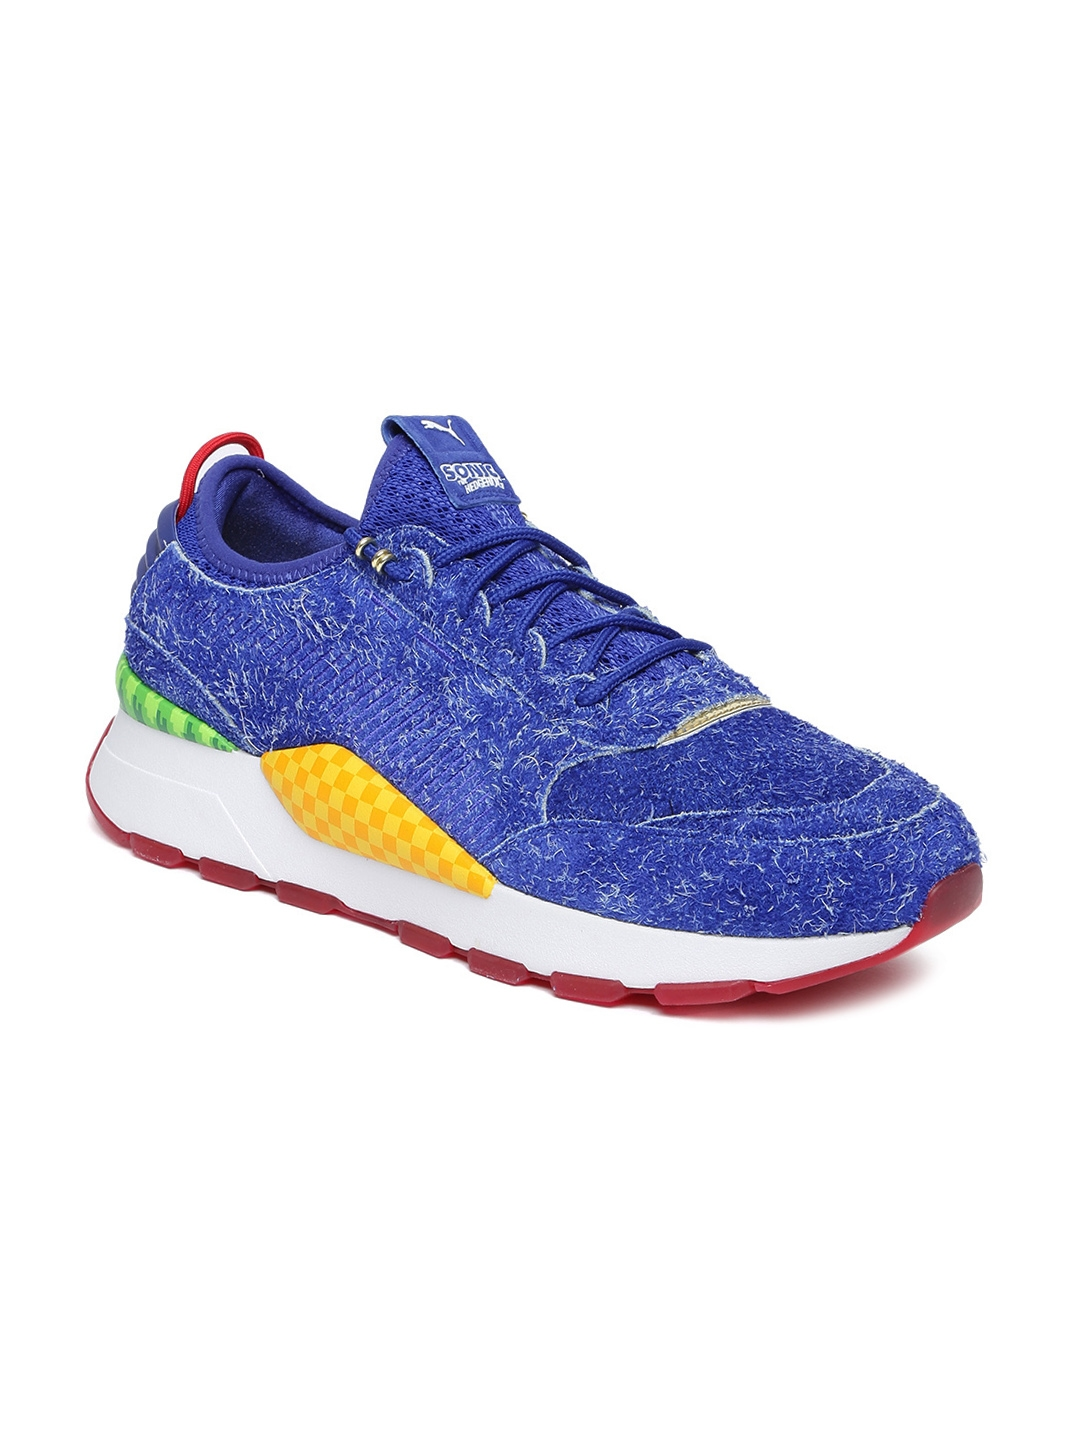 0 Shoes For X Buy Puma Men Rs Blue Running Sports Sonic 6yYgIfmb7v